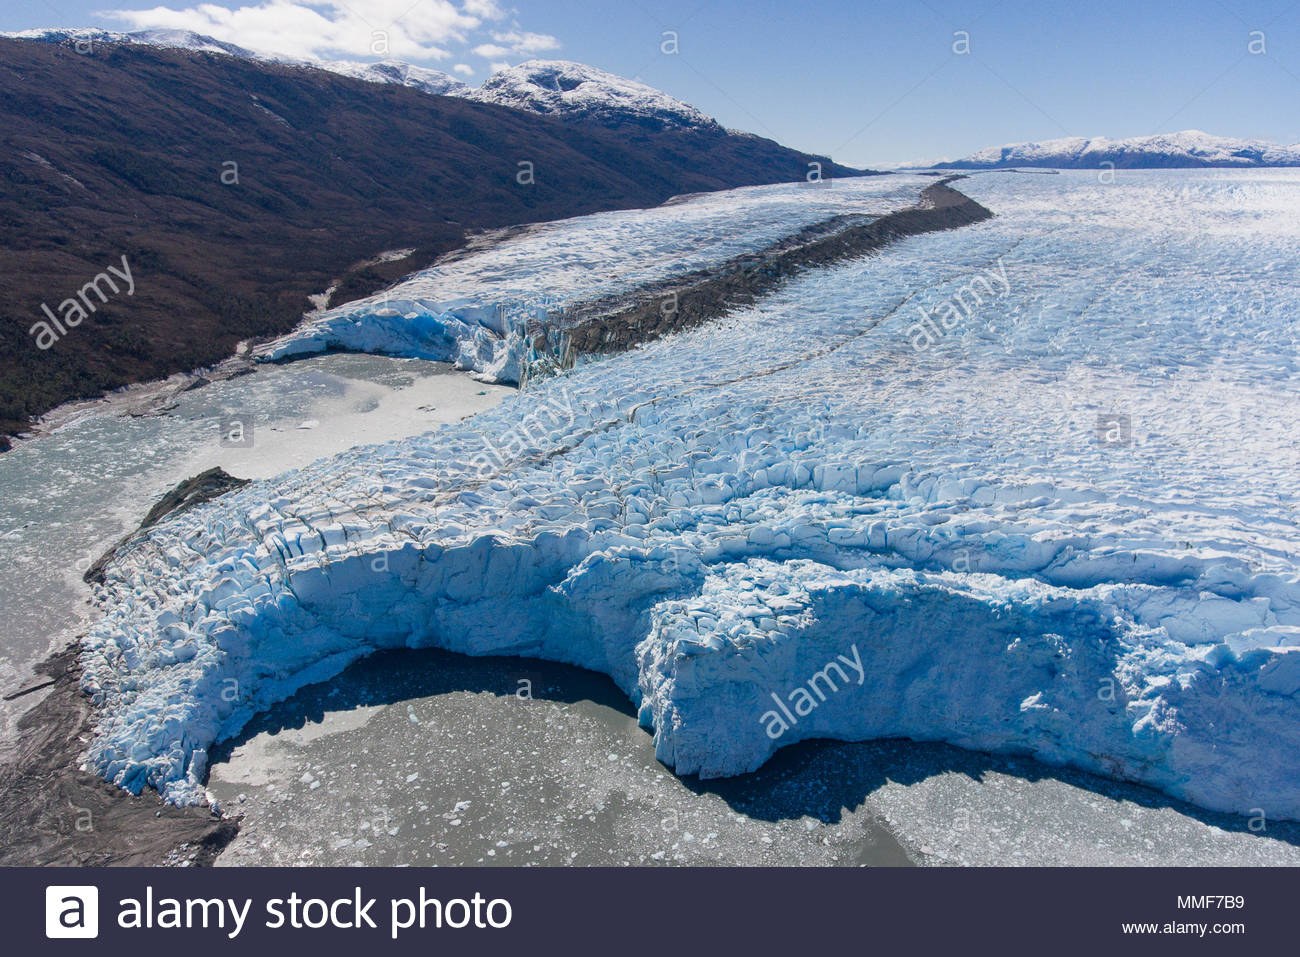 An aerial view of the Bruggen glacier in the Bernardo O'Higgins National Park, Chile. - Stock Image